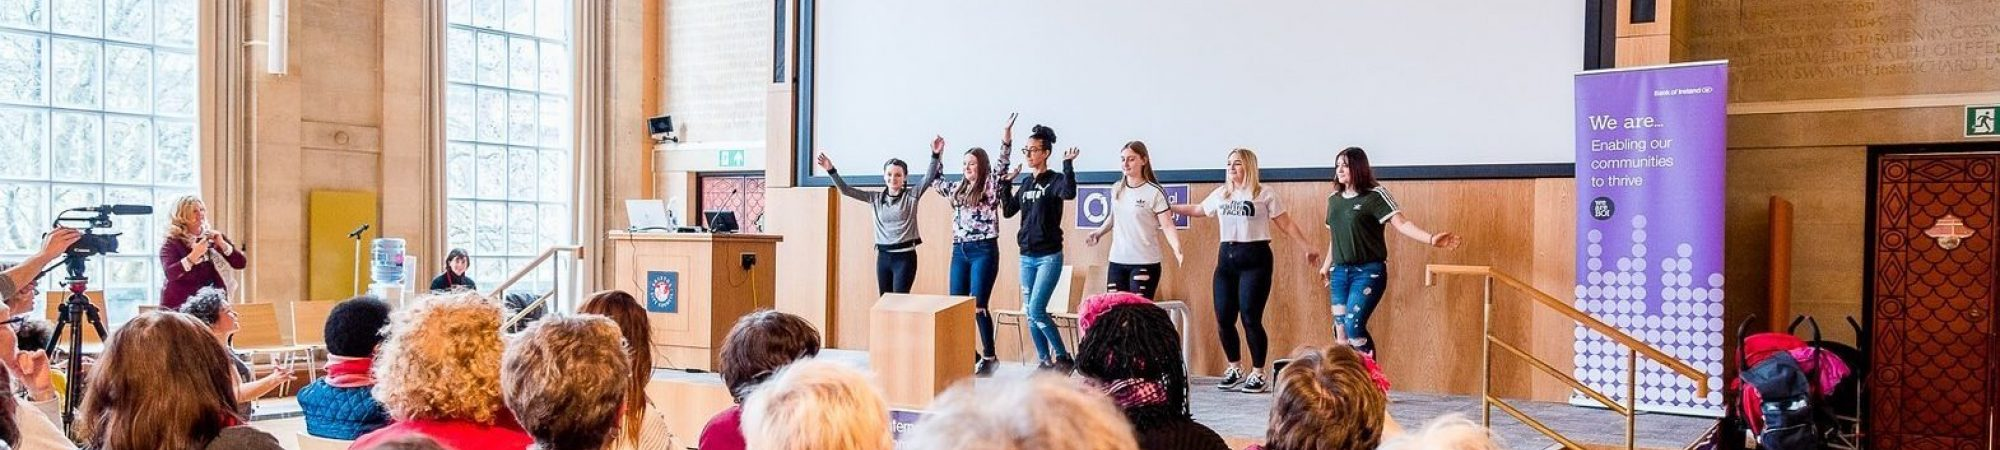 Merchants academy girls performing at iwd 2019 1